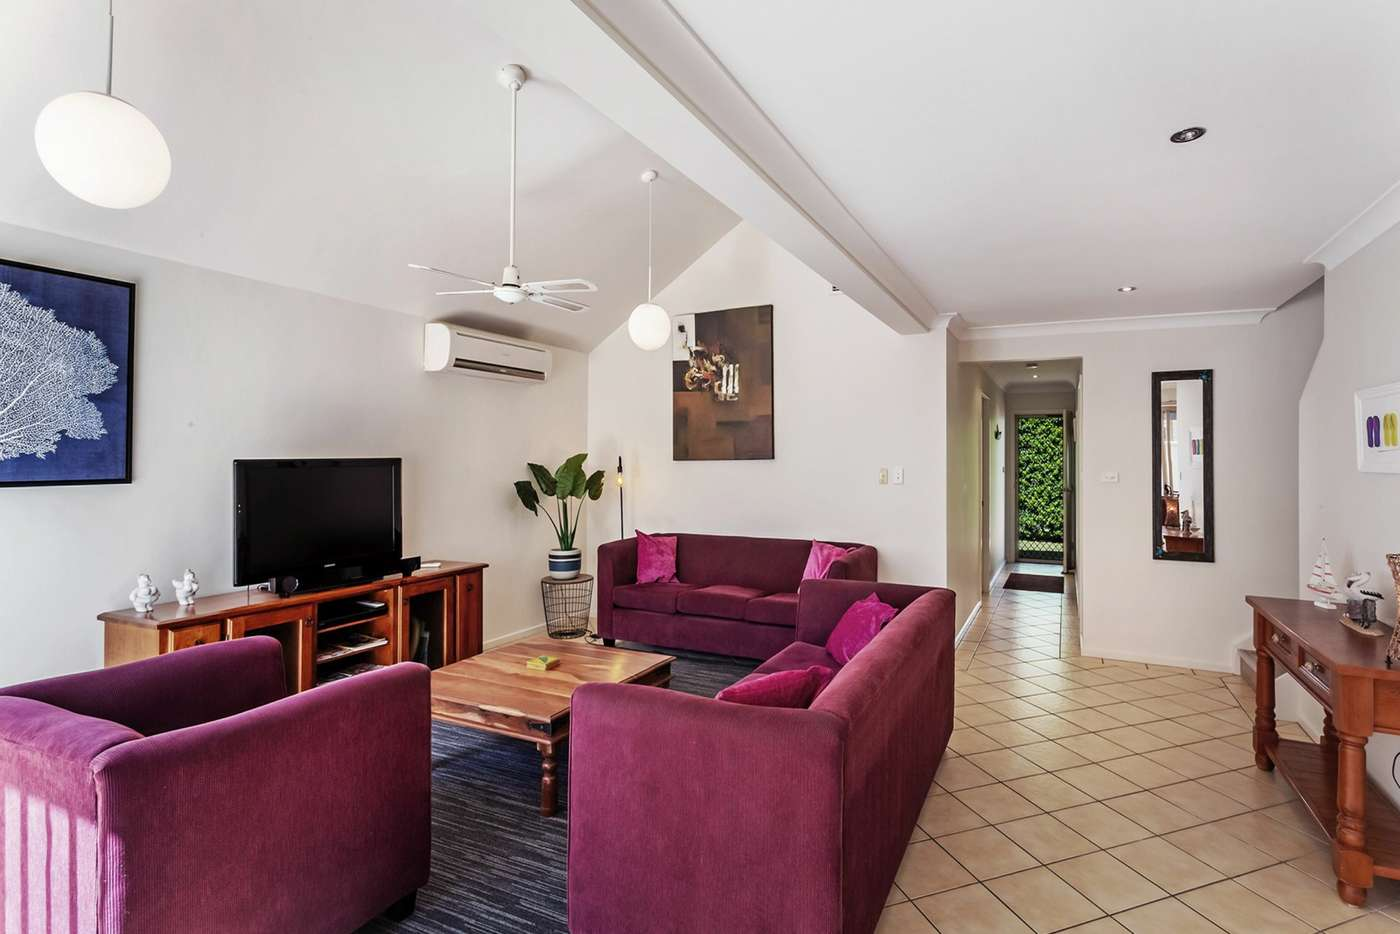 Sixth view of Homely house listing, 34 Achilles Street, Nelson Bay NSW 2315